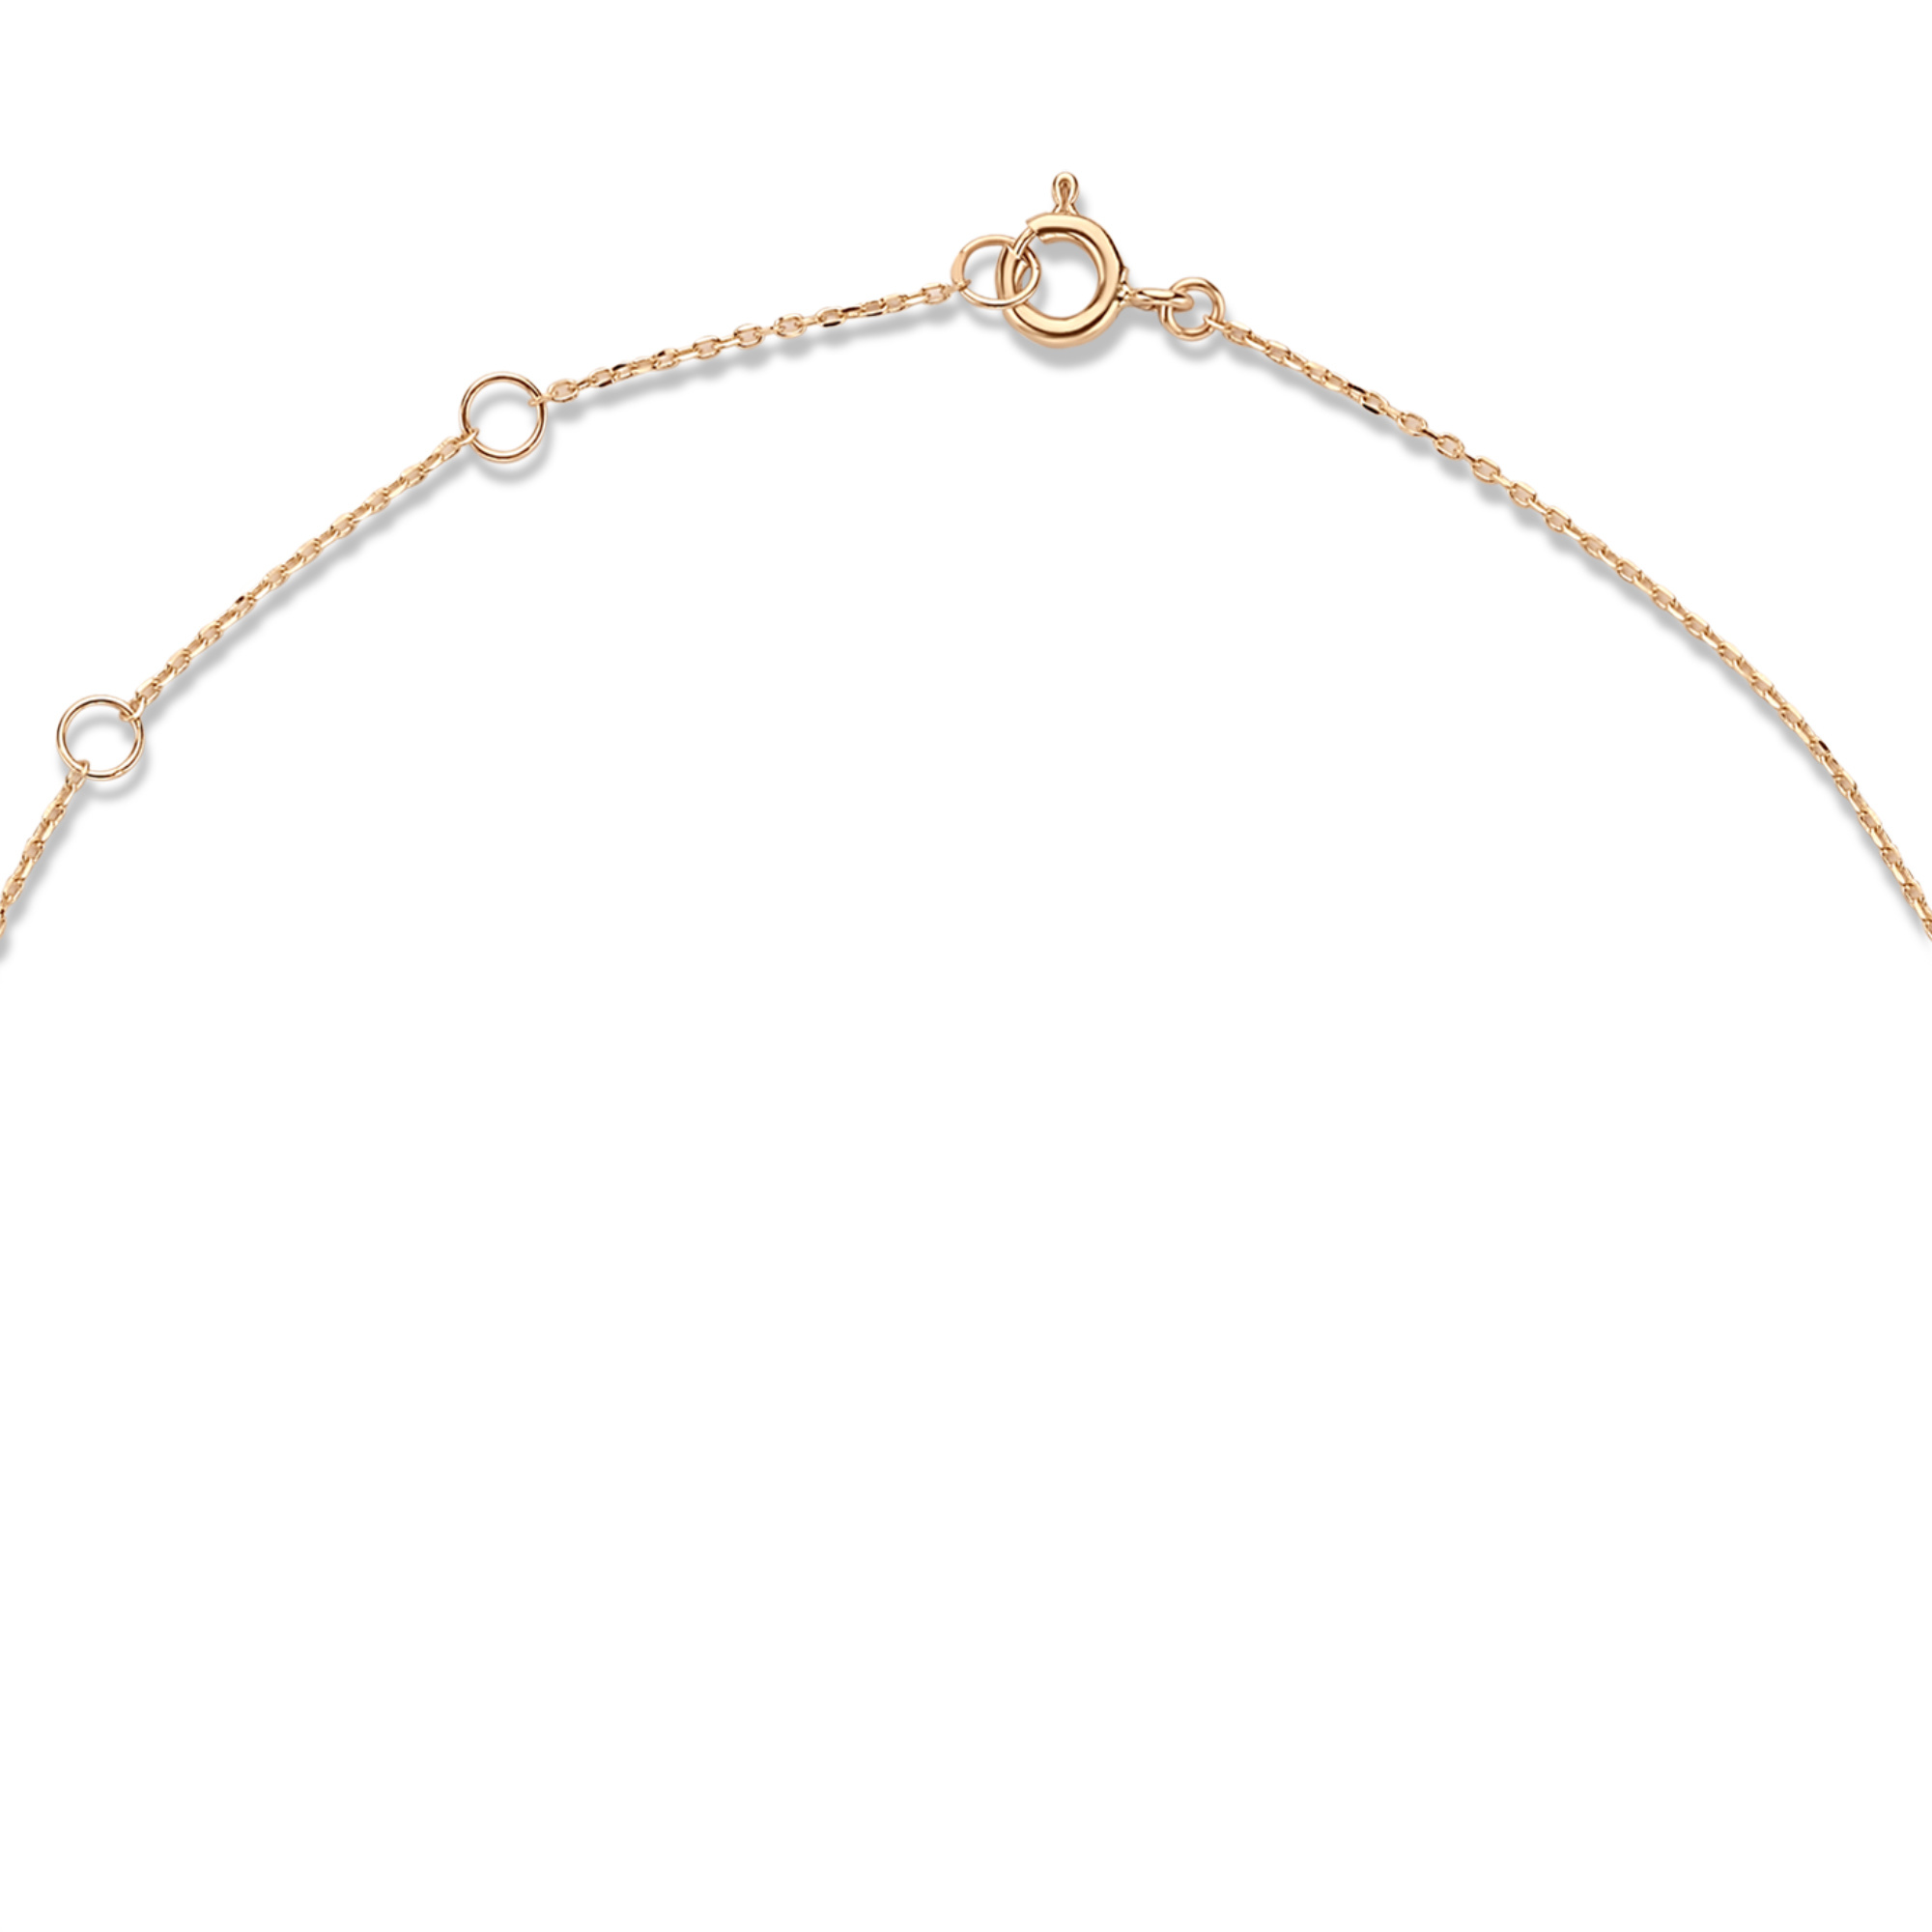 Isabel Bernard La Concorde Énola 14 karat rose gold collier with circles